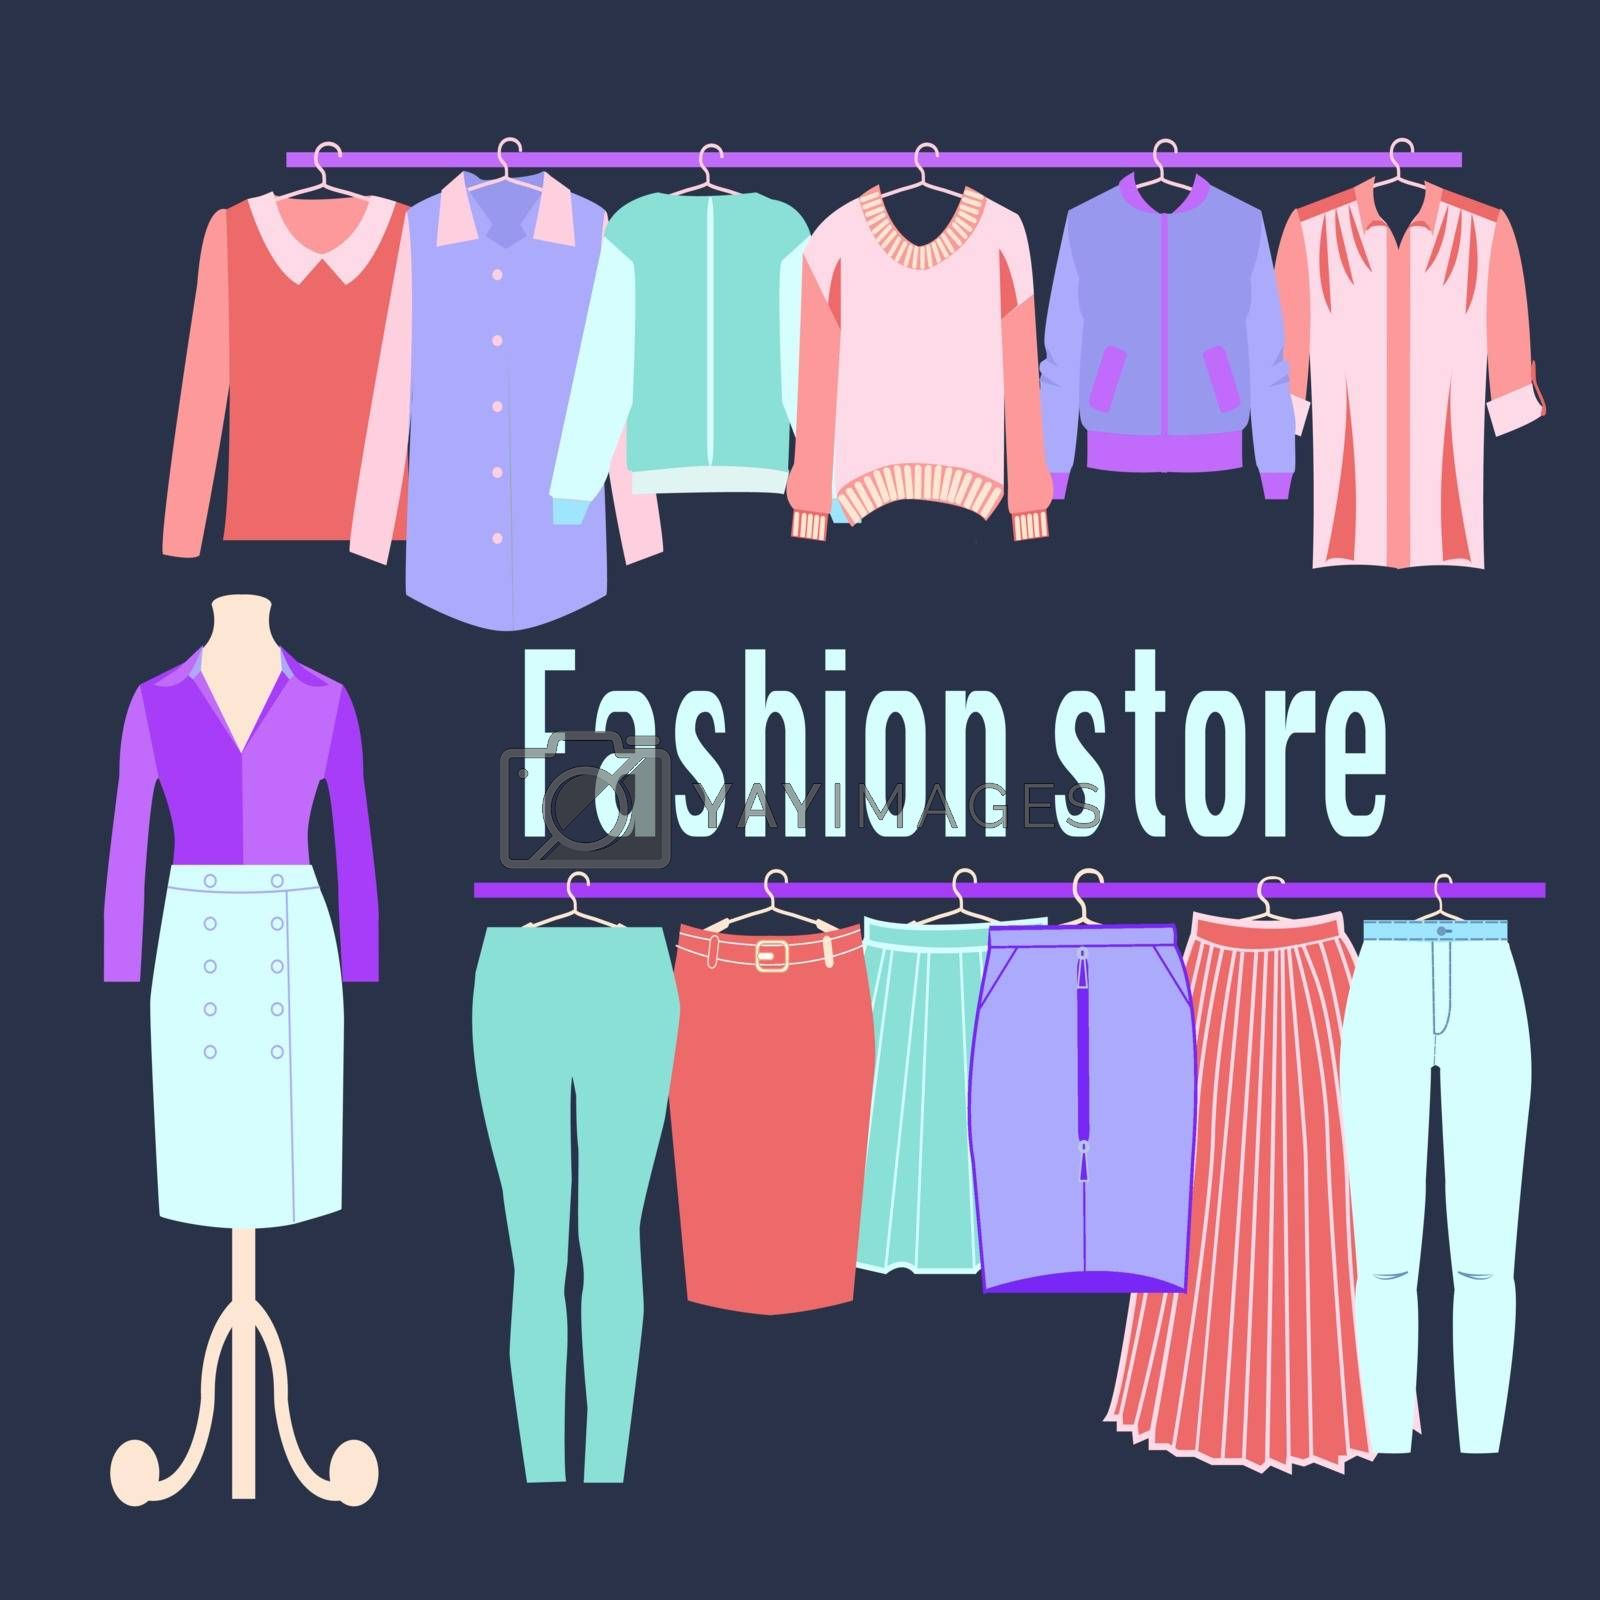 Clothing store background. Boutique Fashion store. Flat design vector illustration. Clothes on hangers.